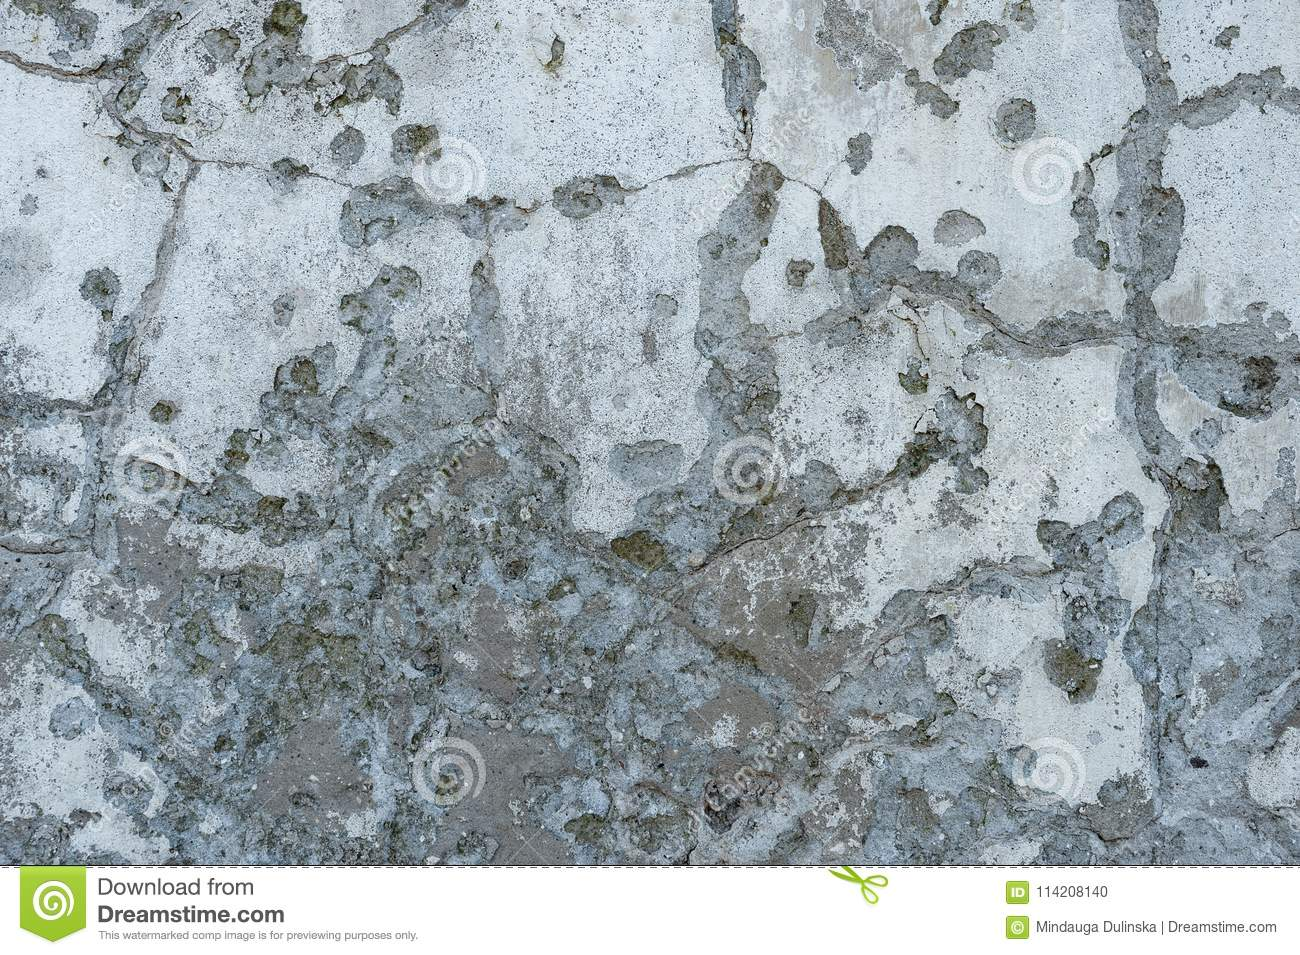 Old grunge textures backgrounds. Perfect background with space. Stone. It is a concept, conceptual or metaphor wall banner, grunge